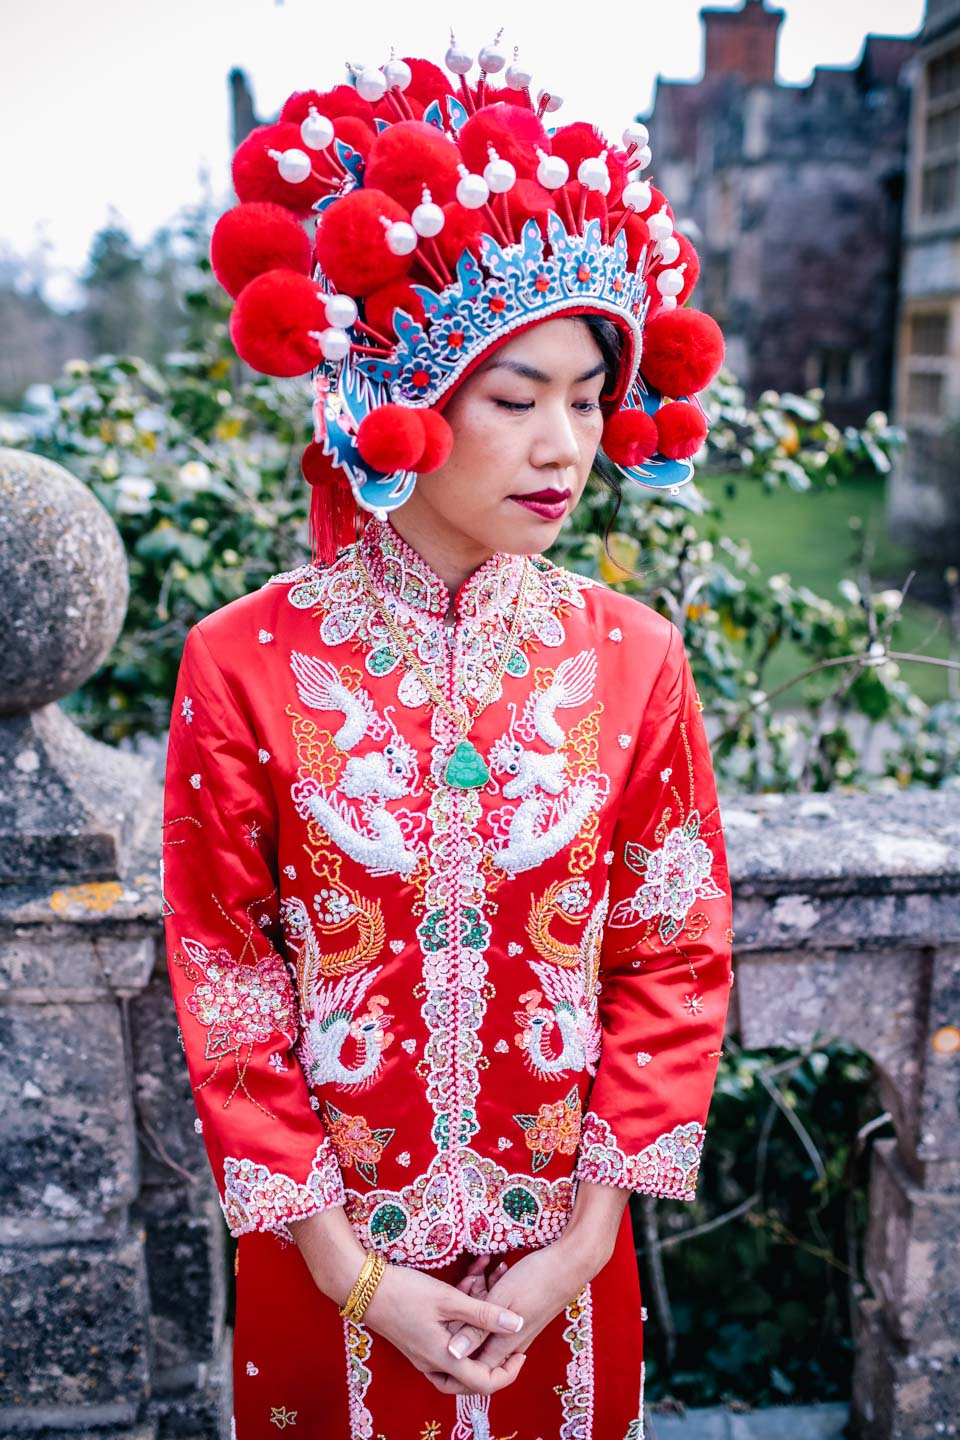 Chinese bride in traditional wedding outfit